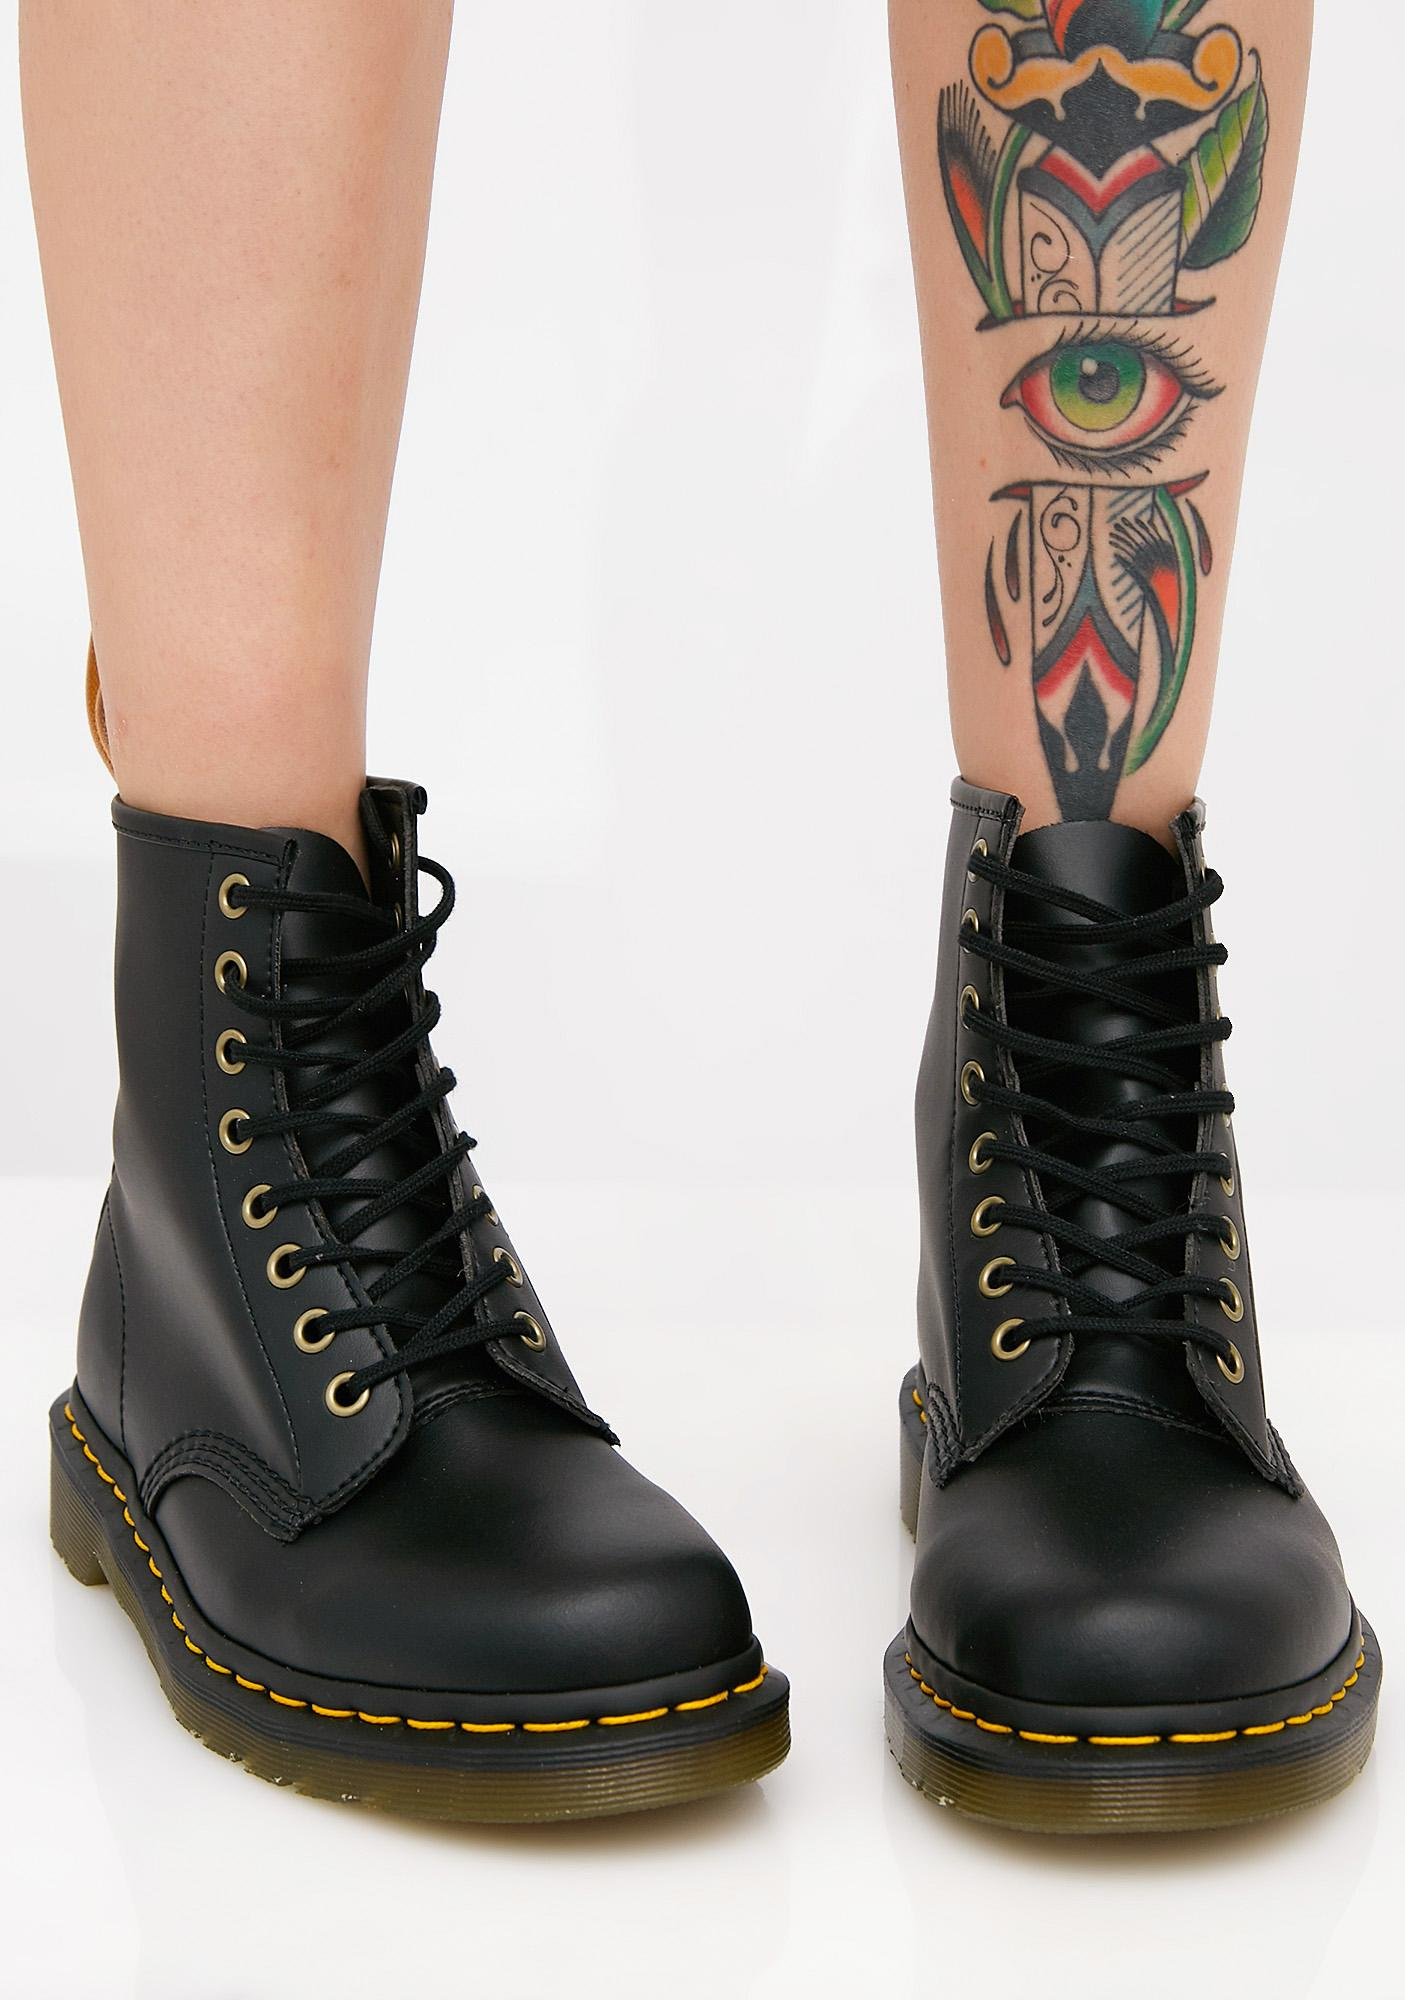 Vegan Shoes You Can Find in Australia